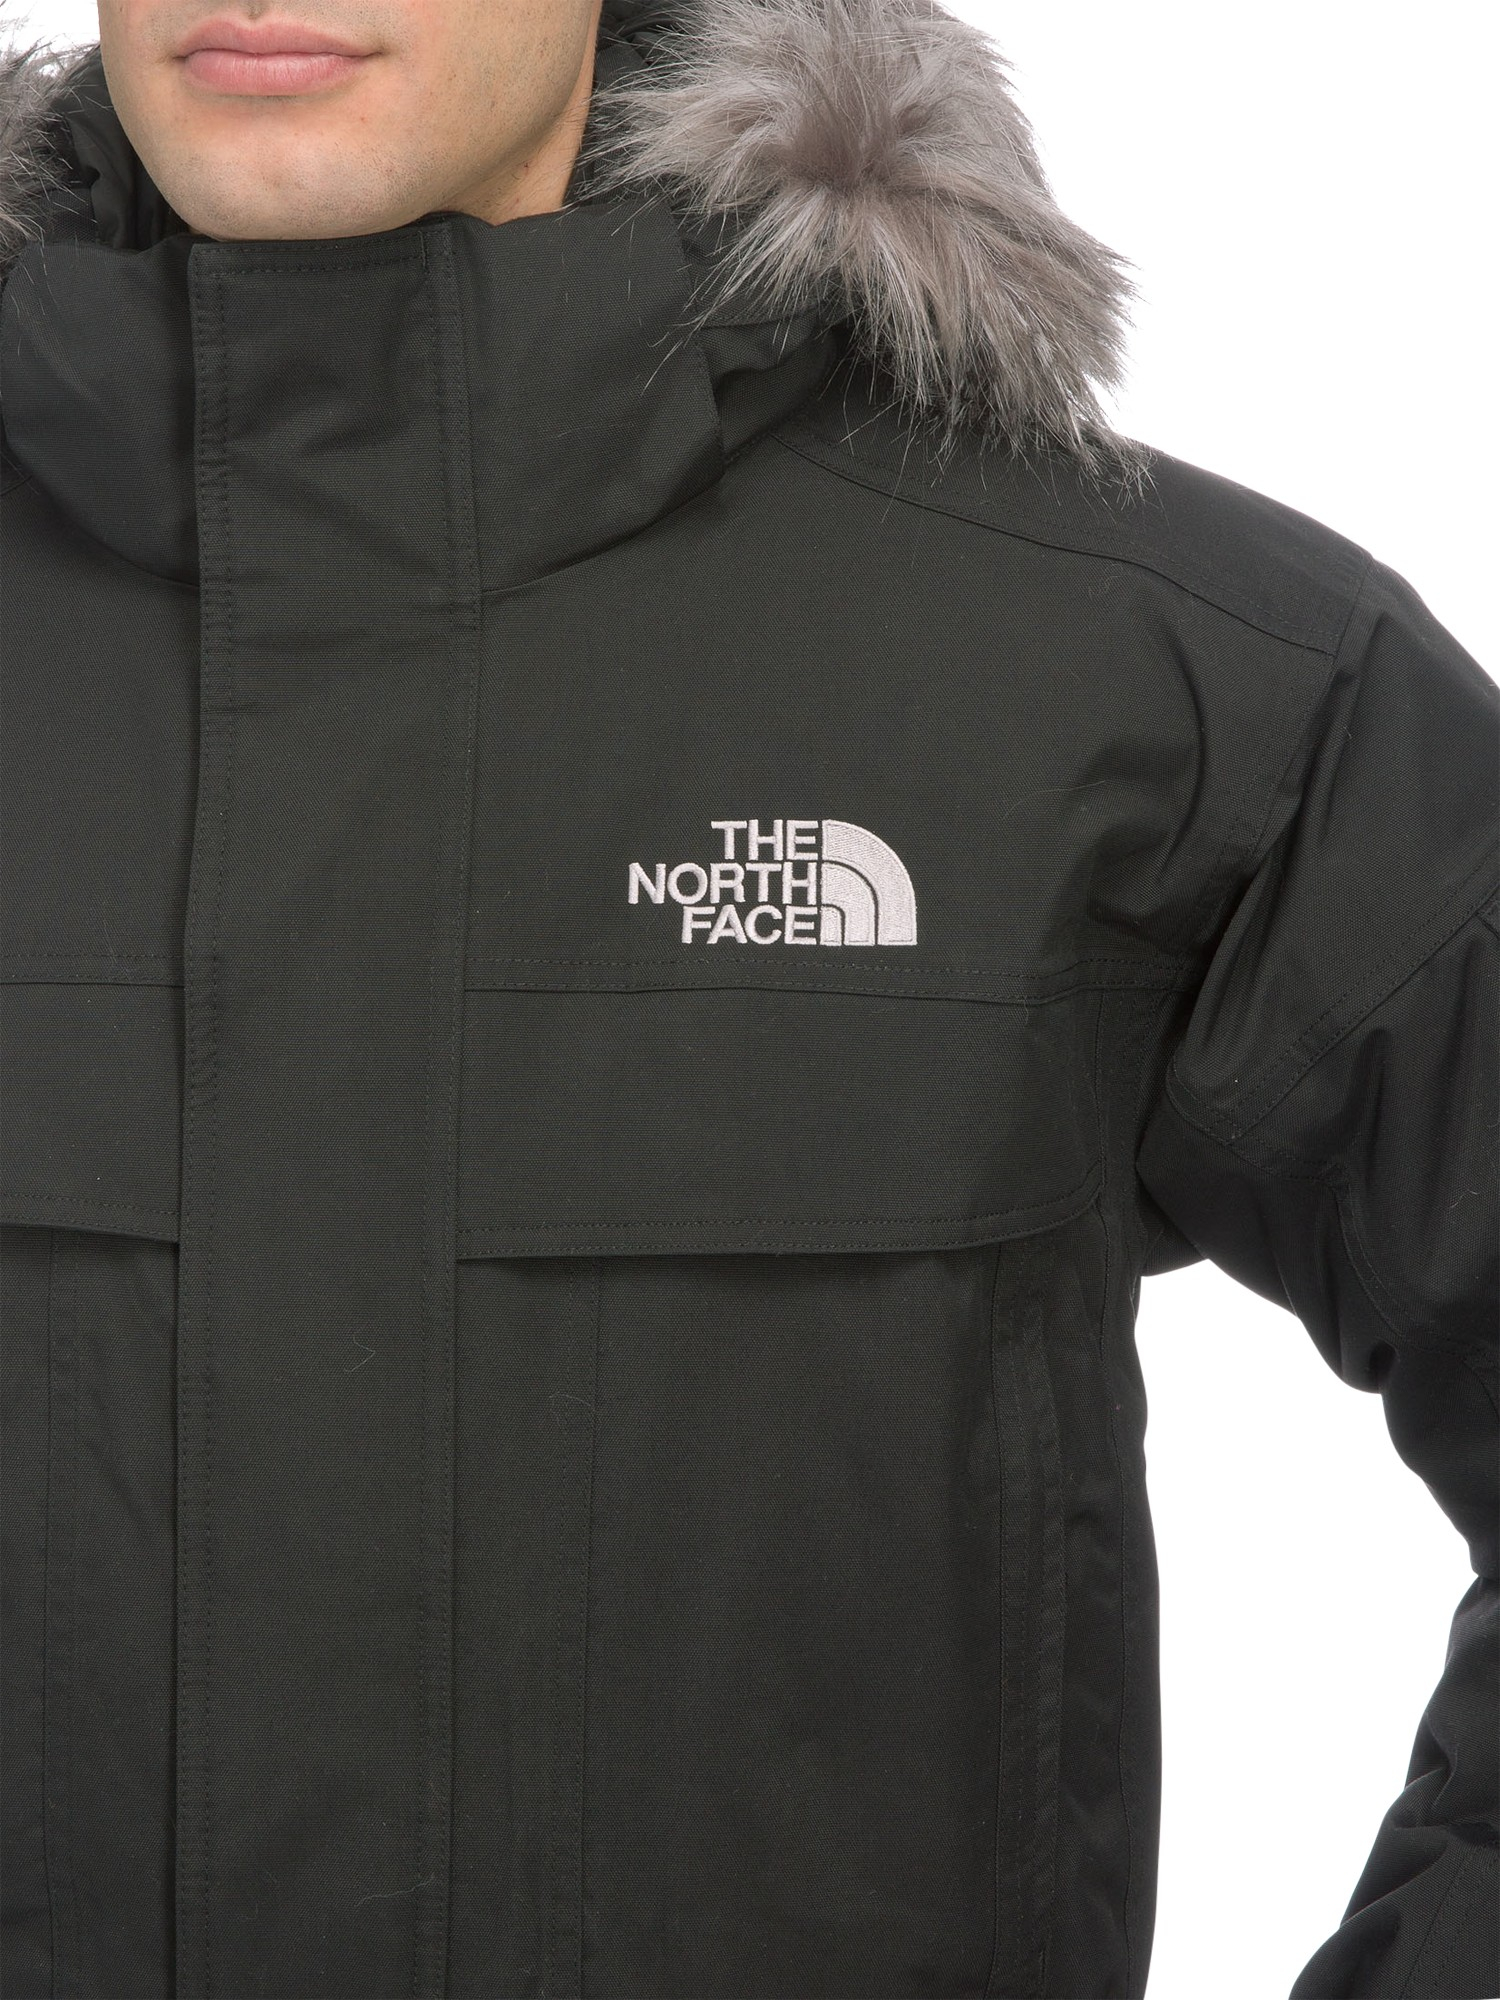 b24199786ae The North Face Men'S Mcmurdo Parka Jacket in Black for Men - Lyst